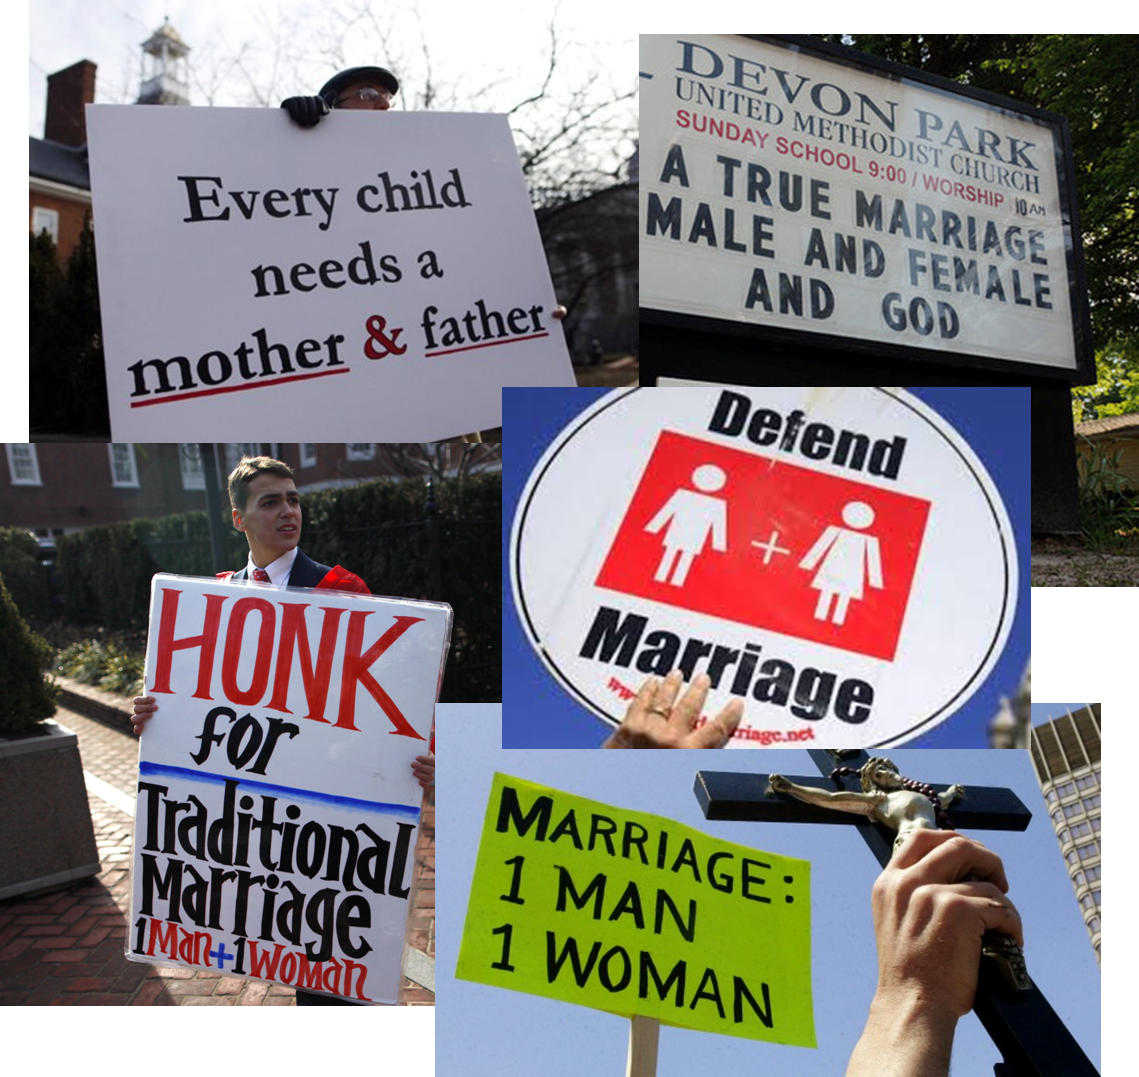 support-traditional-marriage